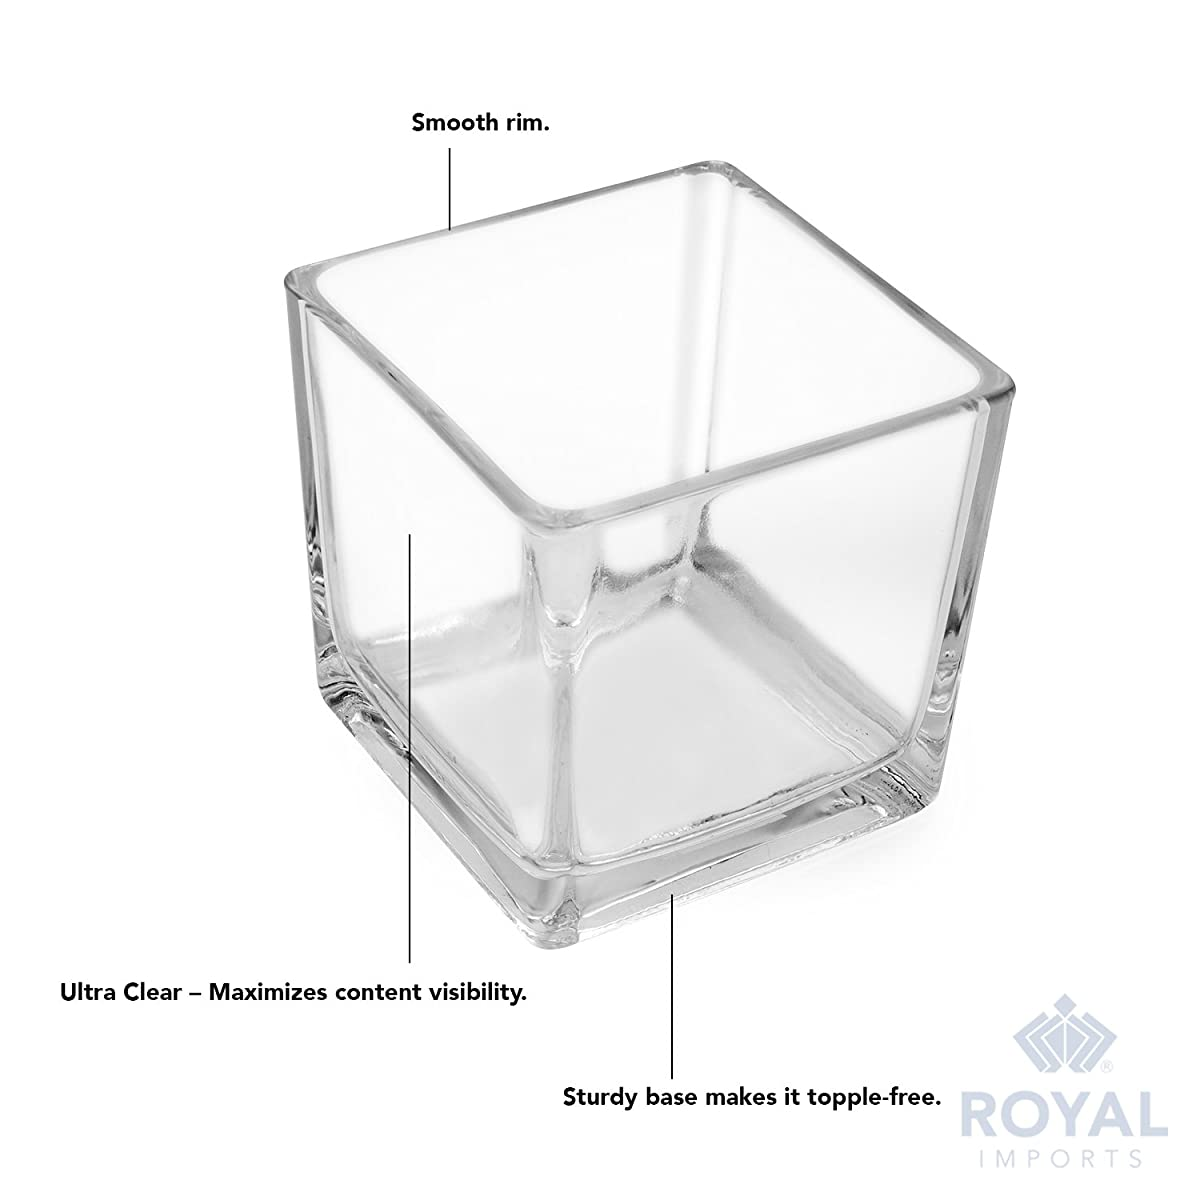 "Royal Imports Flower Glass Vase Decorative Centerpiece for Home or Wedding Clear Cube Shape, 2.5""x2.5""x2.5"", Set of 6"